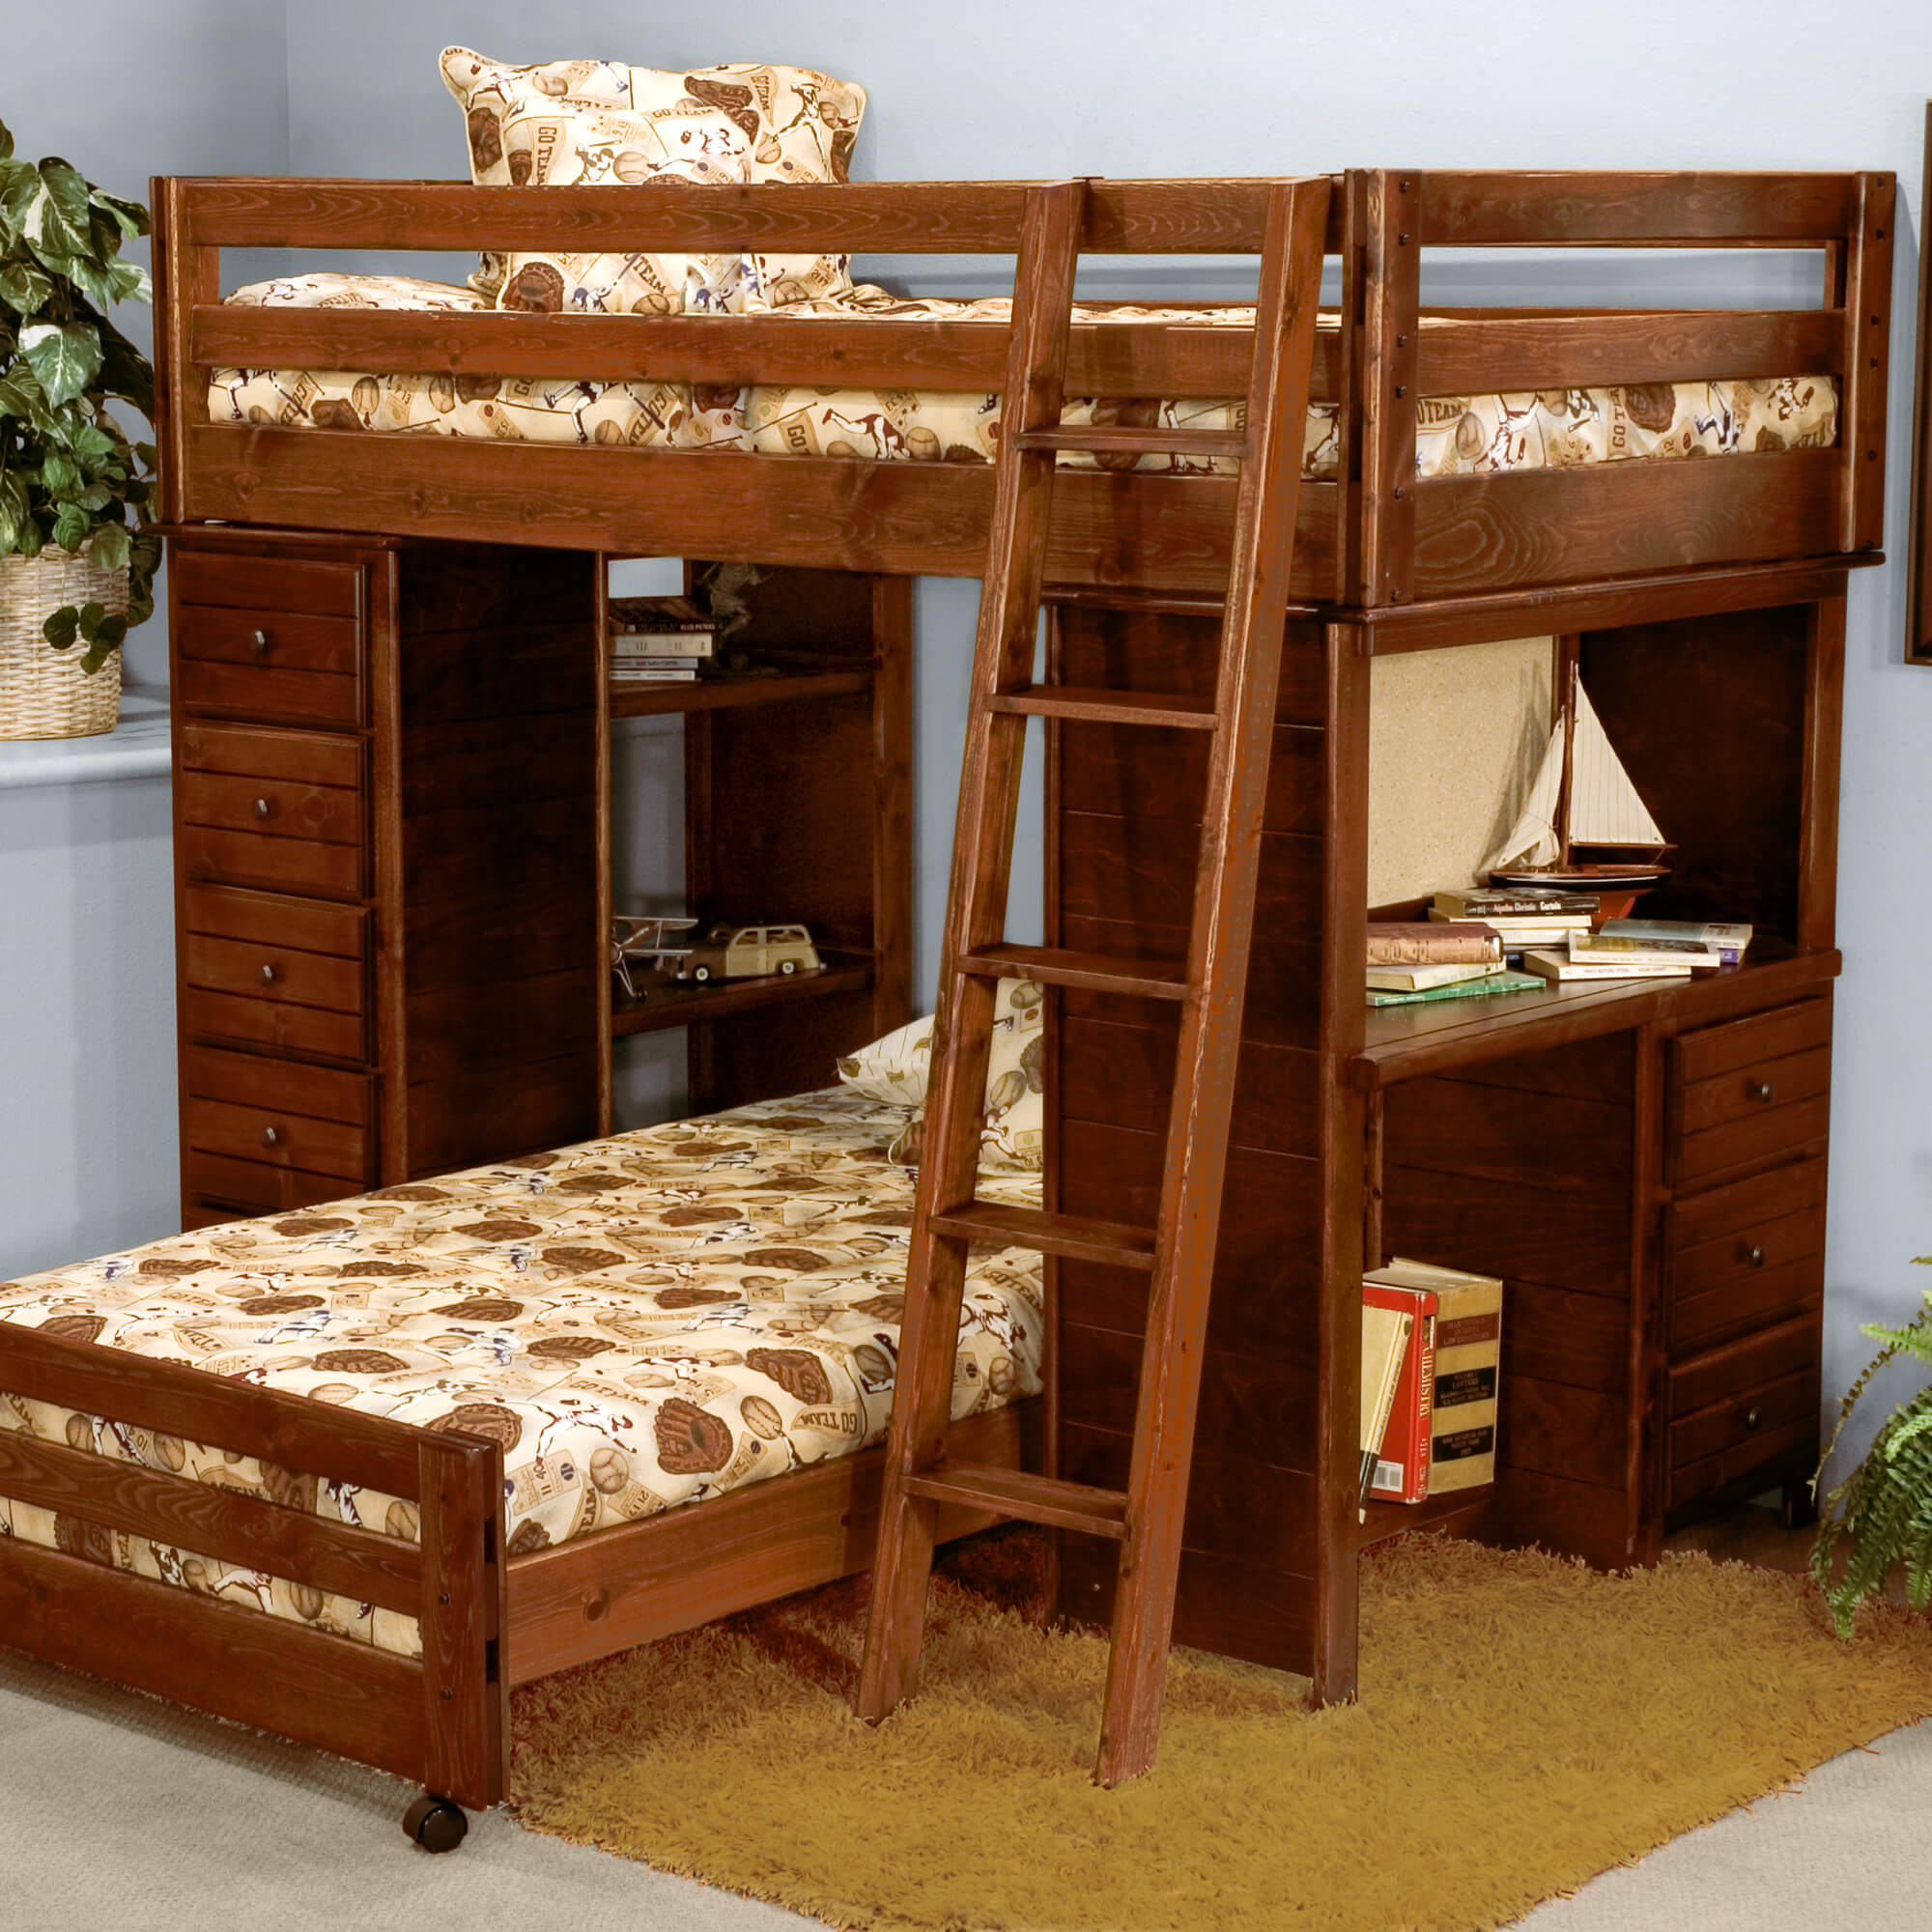 Wood bunk beds with desk - This Solid Ponderosa Pine L Shaped Bunk Bed Offers Custom Configuration Because The Lower Bed